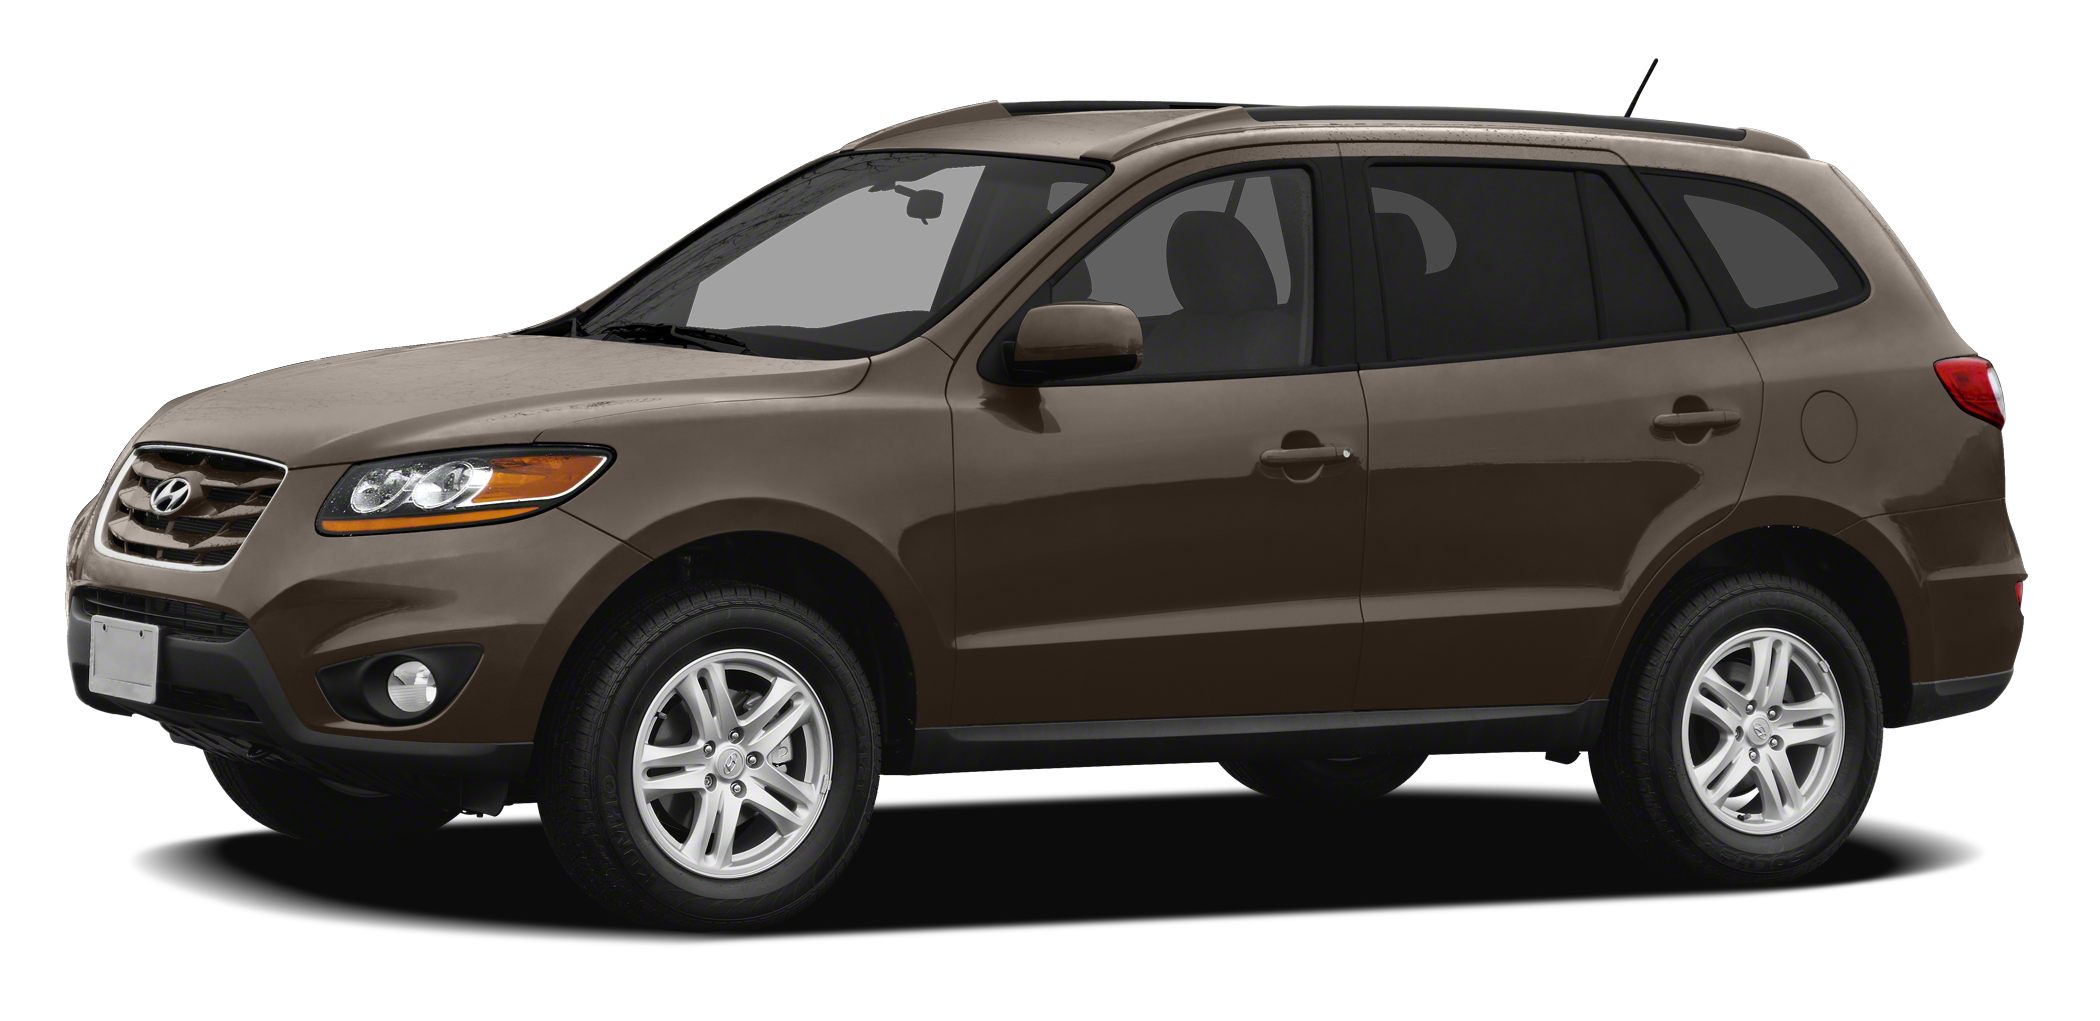 2012 Hyundai Santa Fe GLS Safe and reliable this 2012 Hyundai Santa Fe GLS makes room for the who